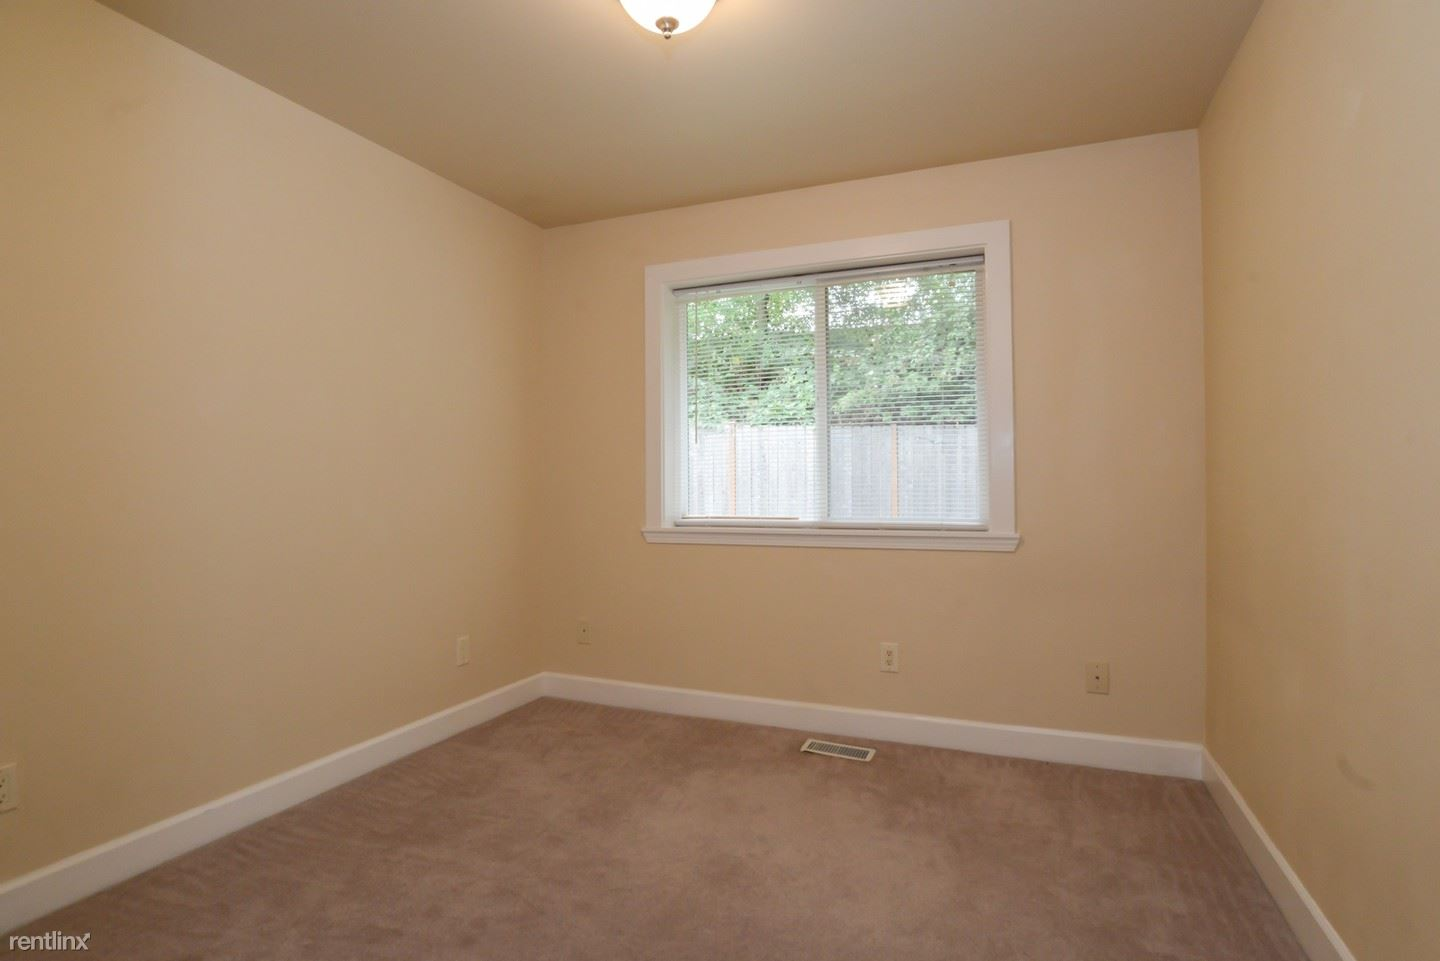 2900 S Court St - 680USD / month